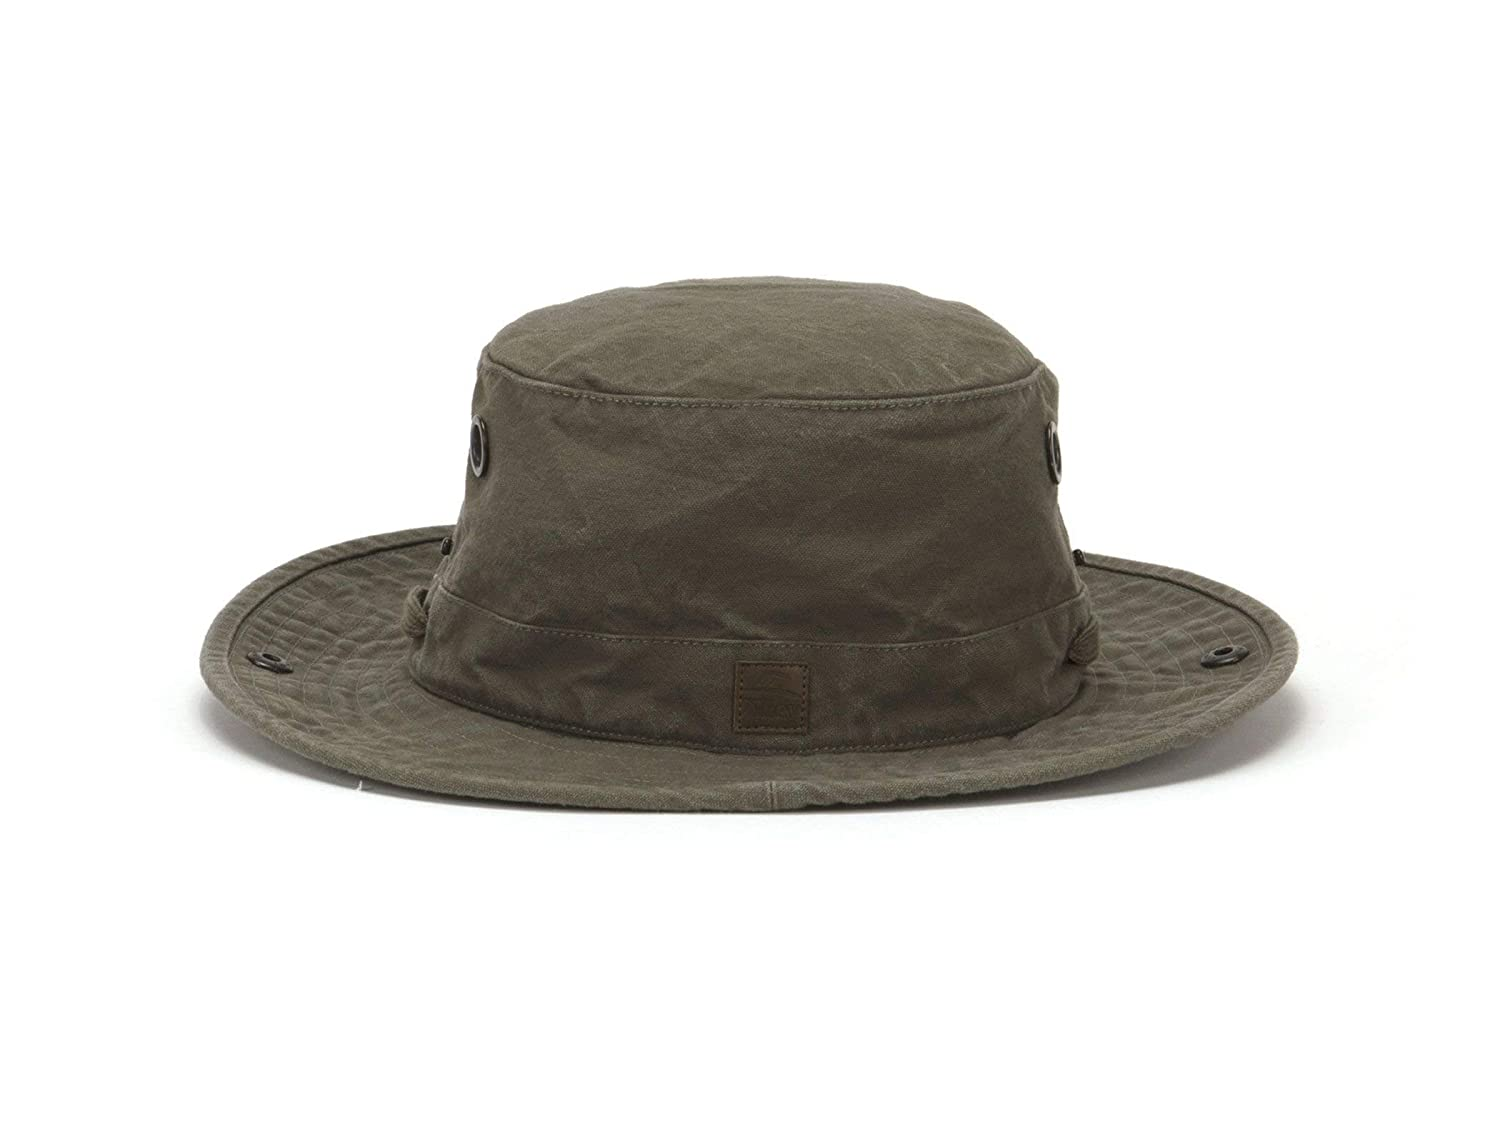 Tilley Hats T3-Wanderer Men's Hat